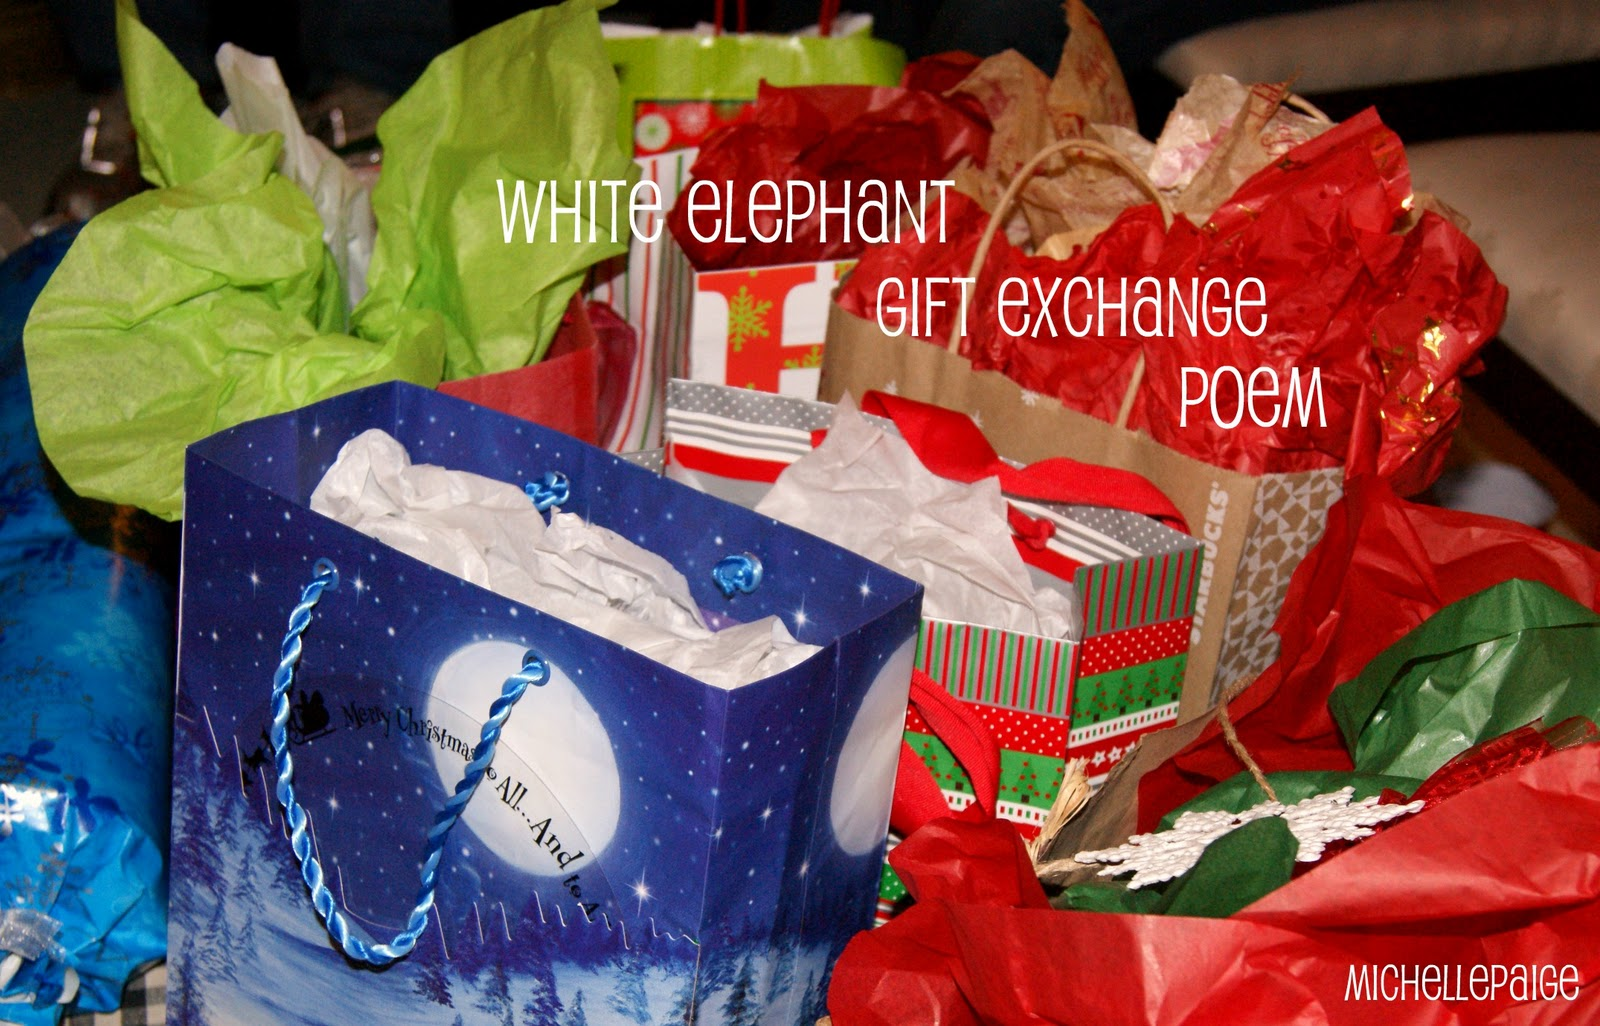 Christmas Gift Exchange Poem.Michelle Paige Blogs White Elephant Gift Exchange Poem